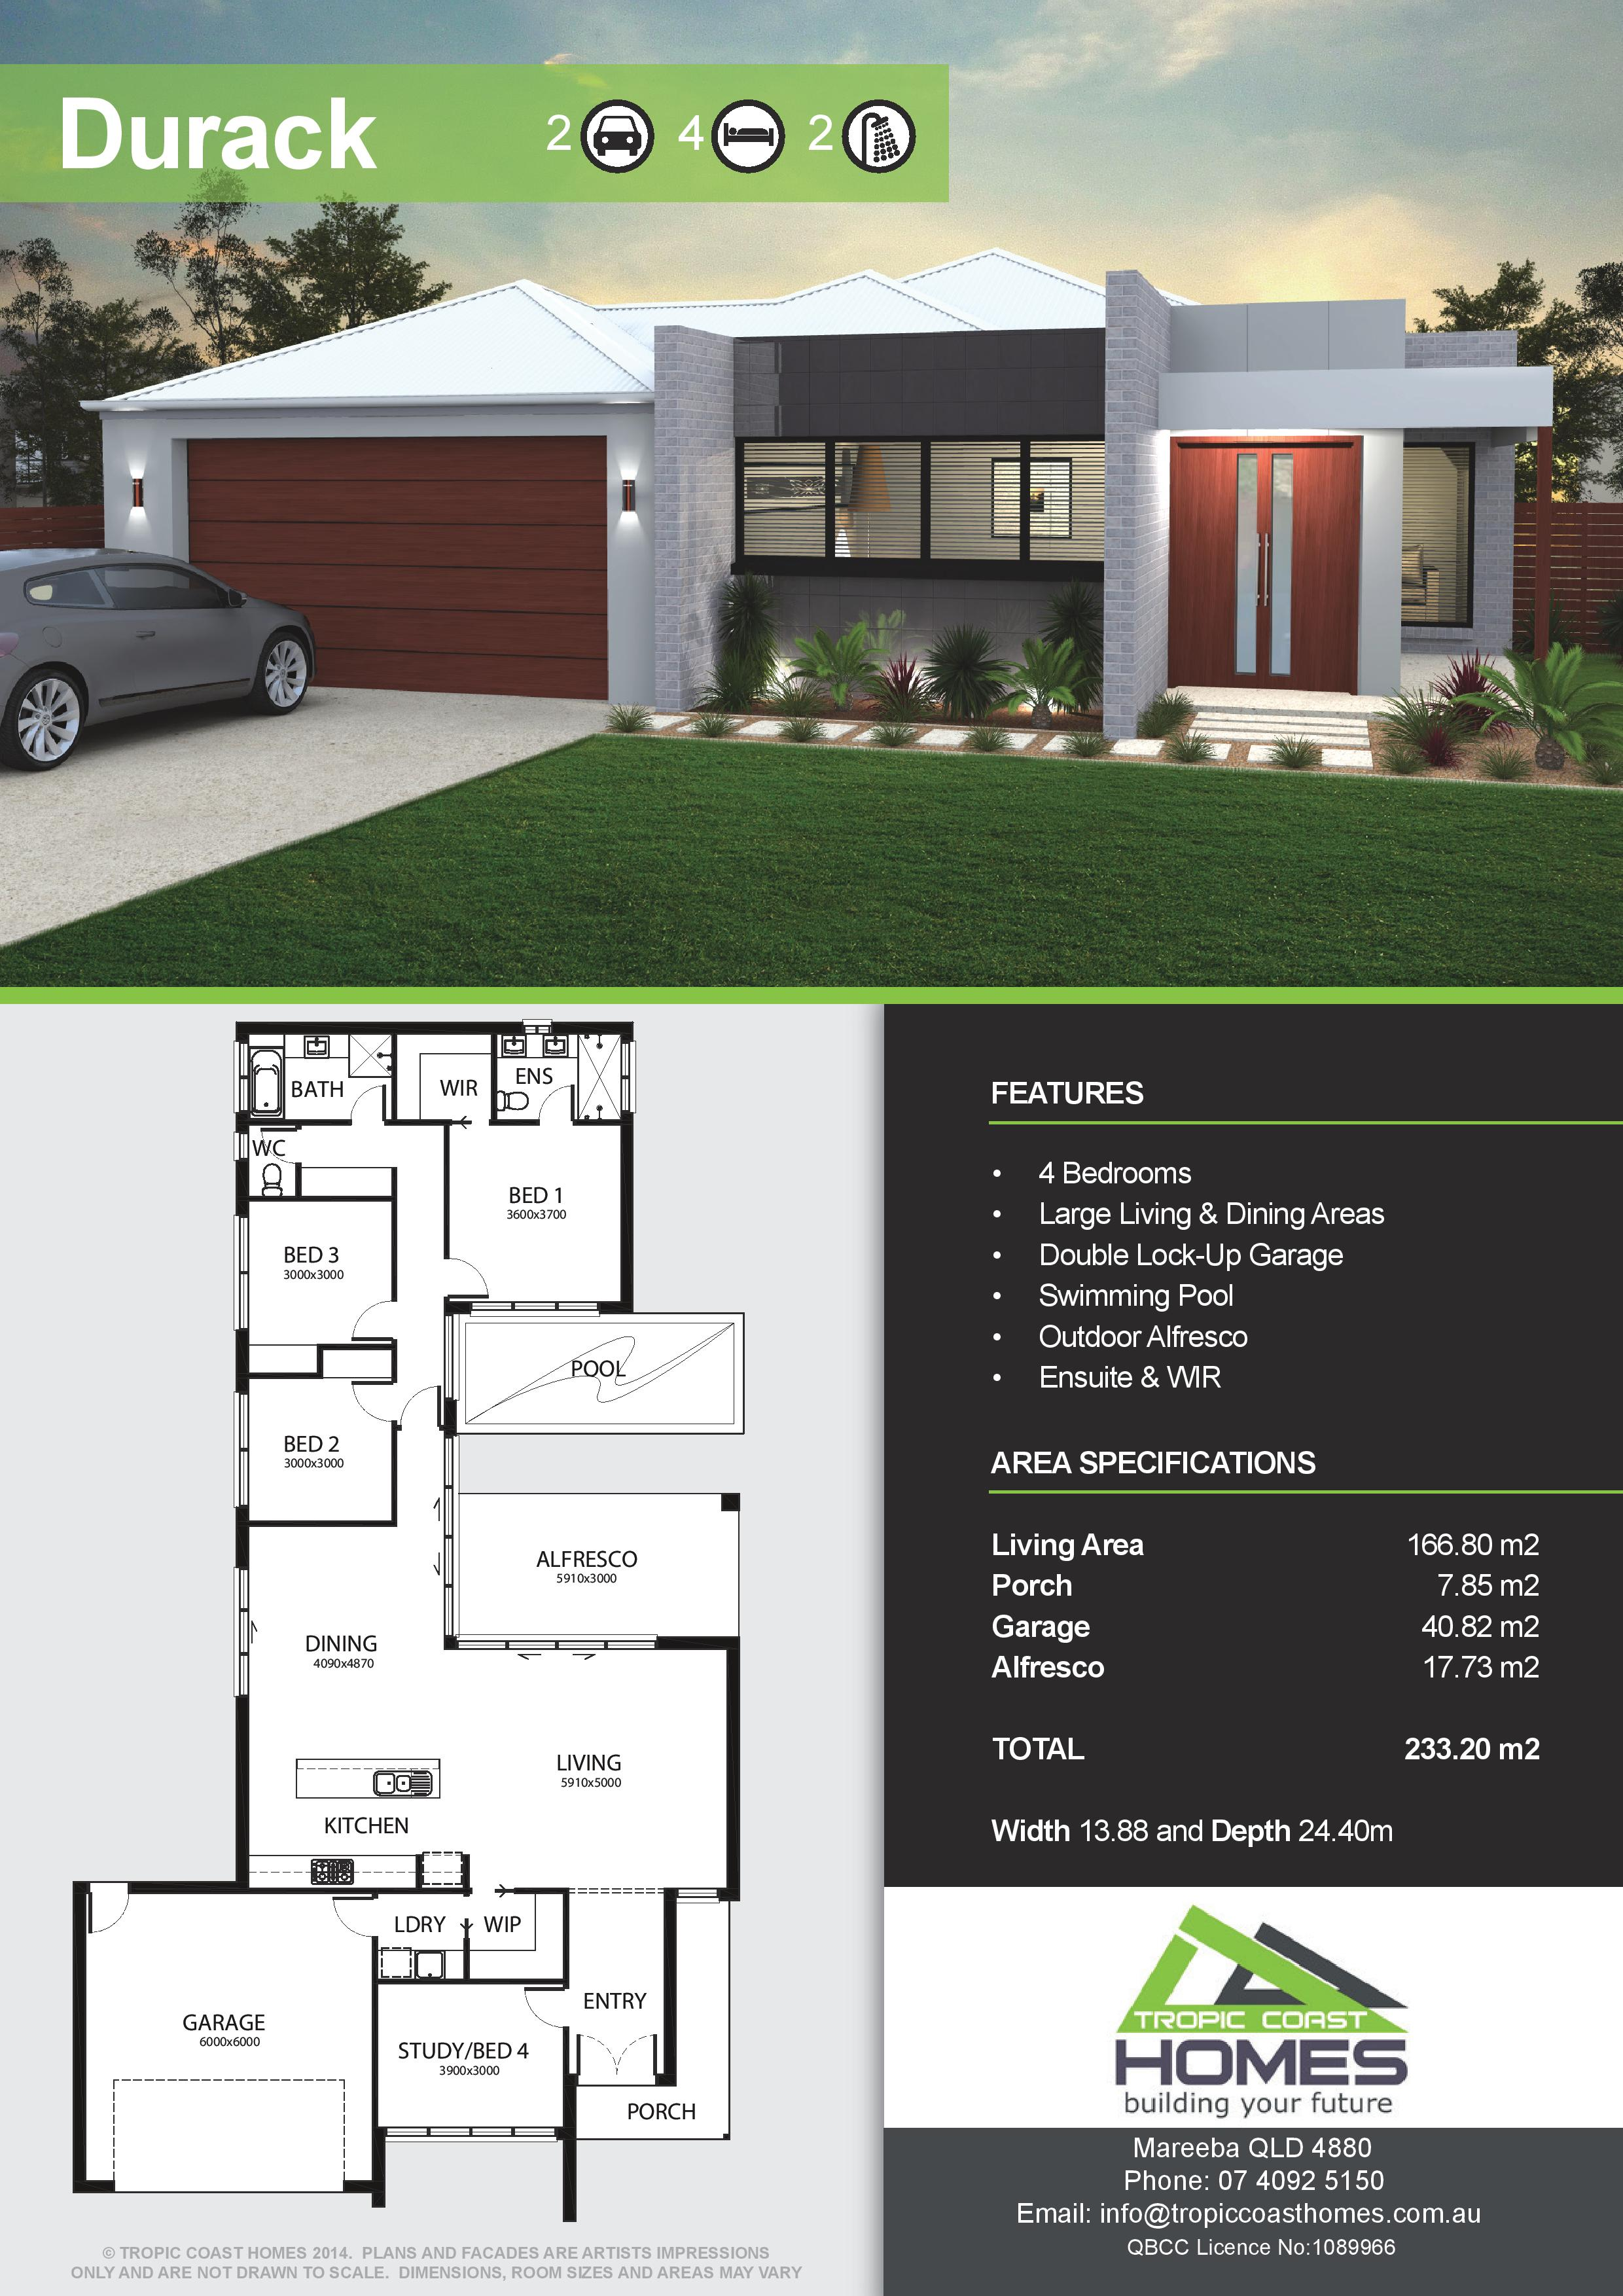 Durack-page-001